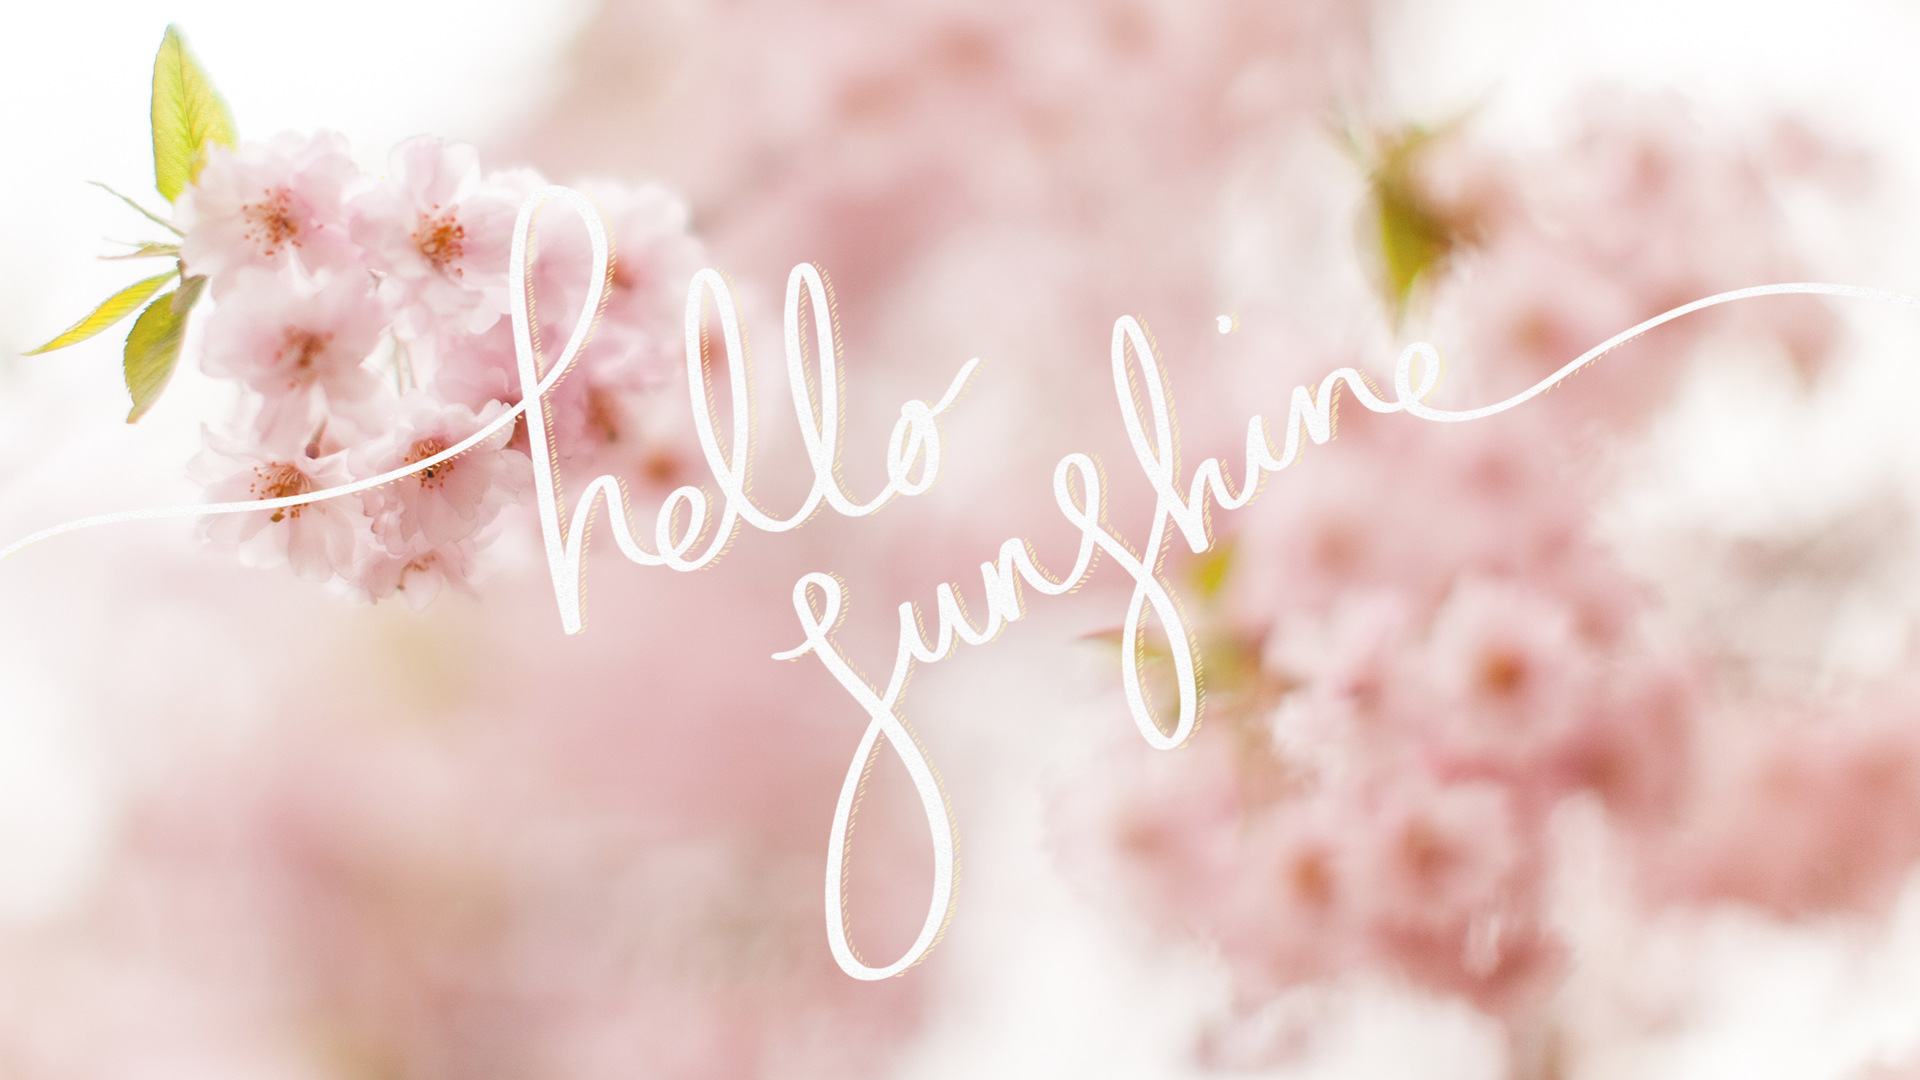 You Are My Sunshine Wallpaper